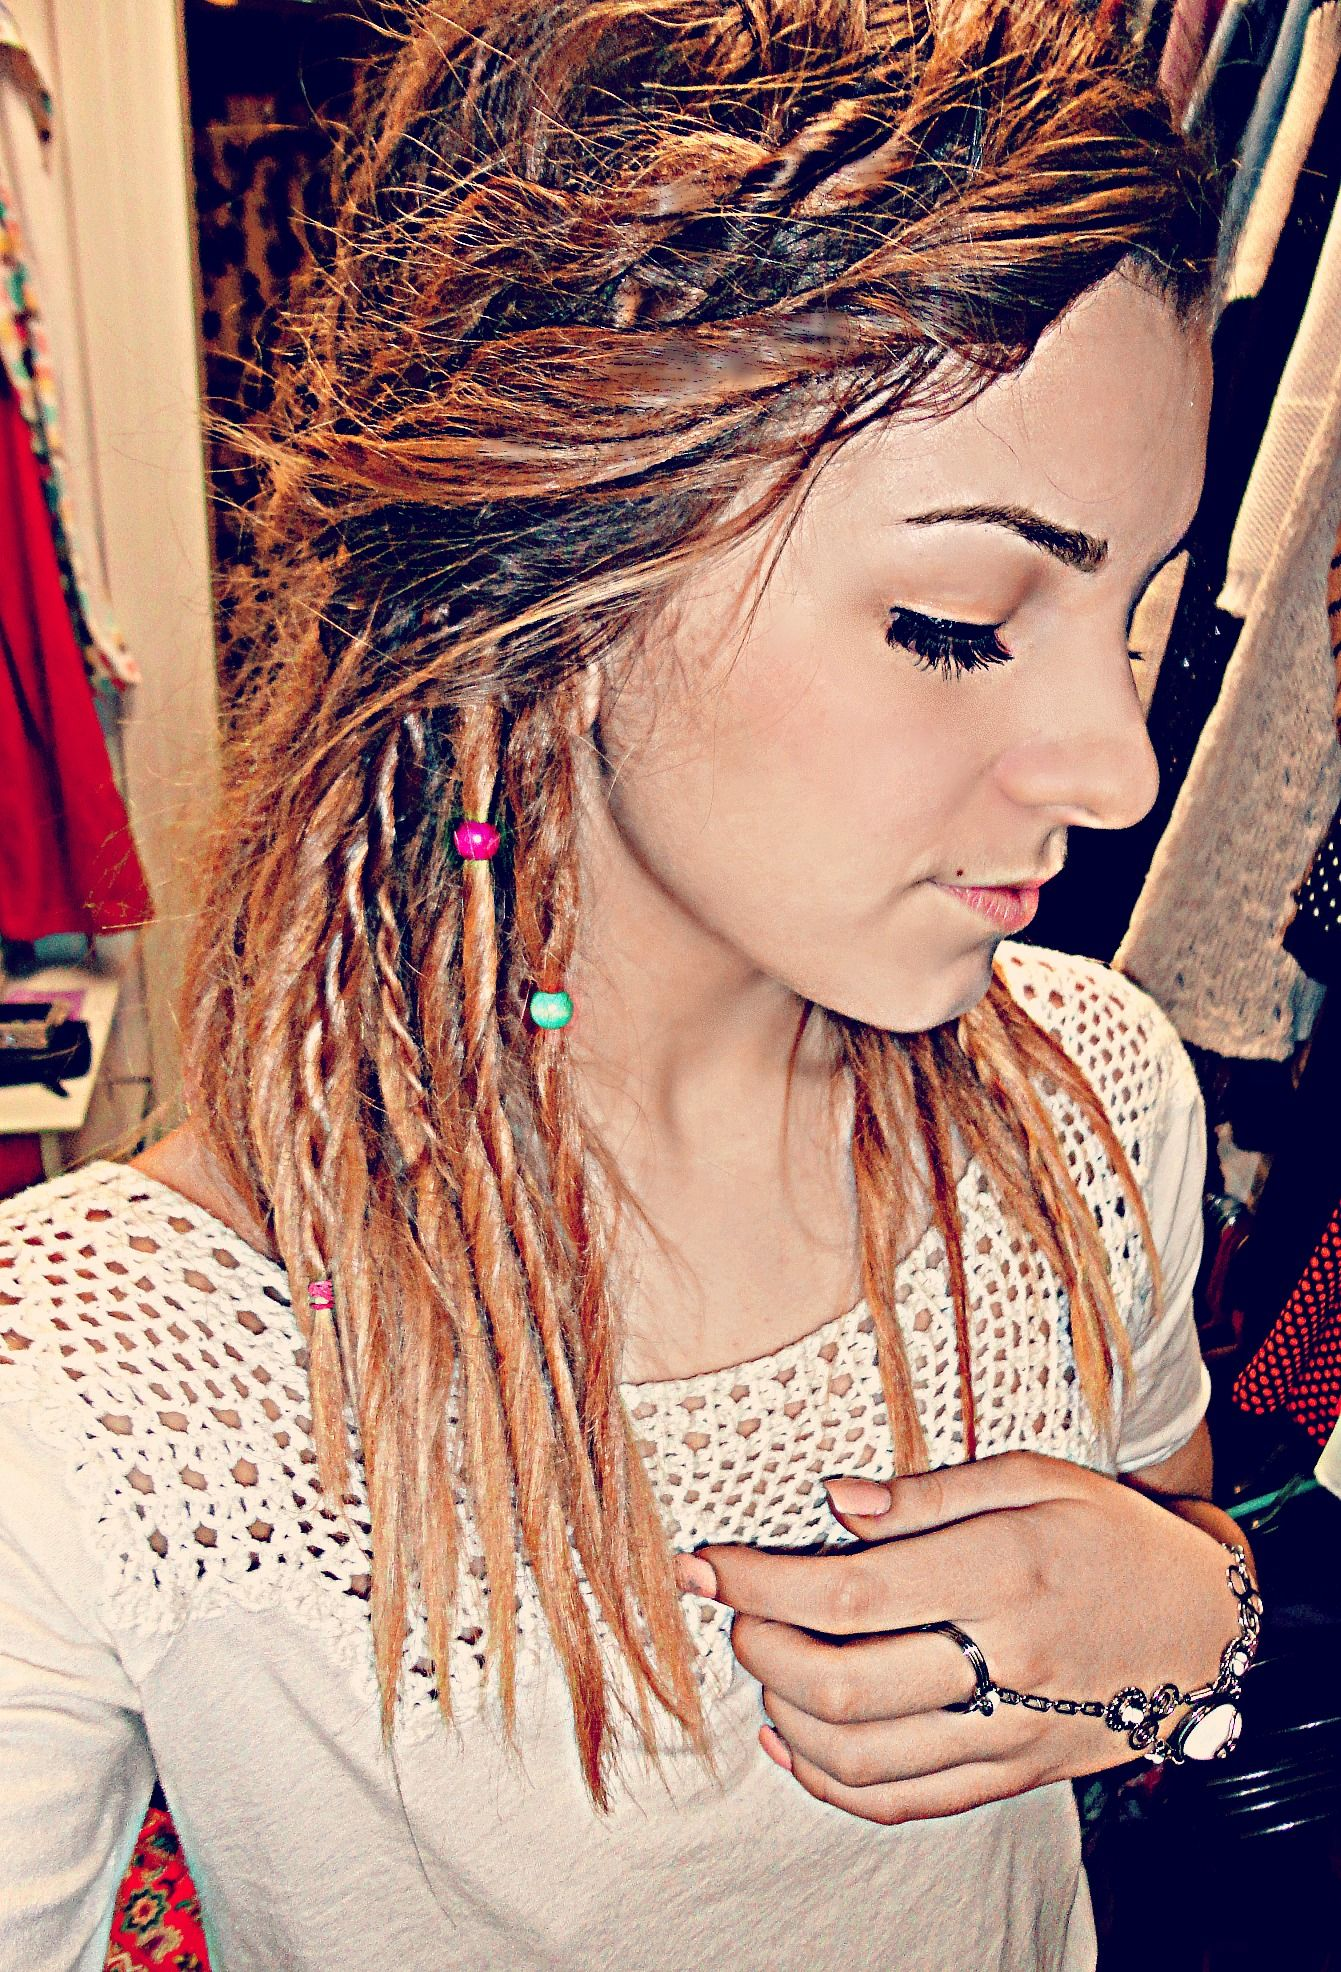 Pin by Taylor Wren Marie Holder on Hairy Potter | Temporary dreads, Simply hairstyles, Faux dreads